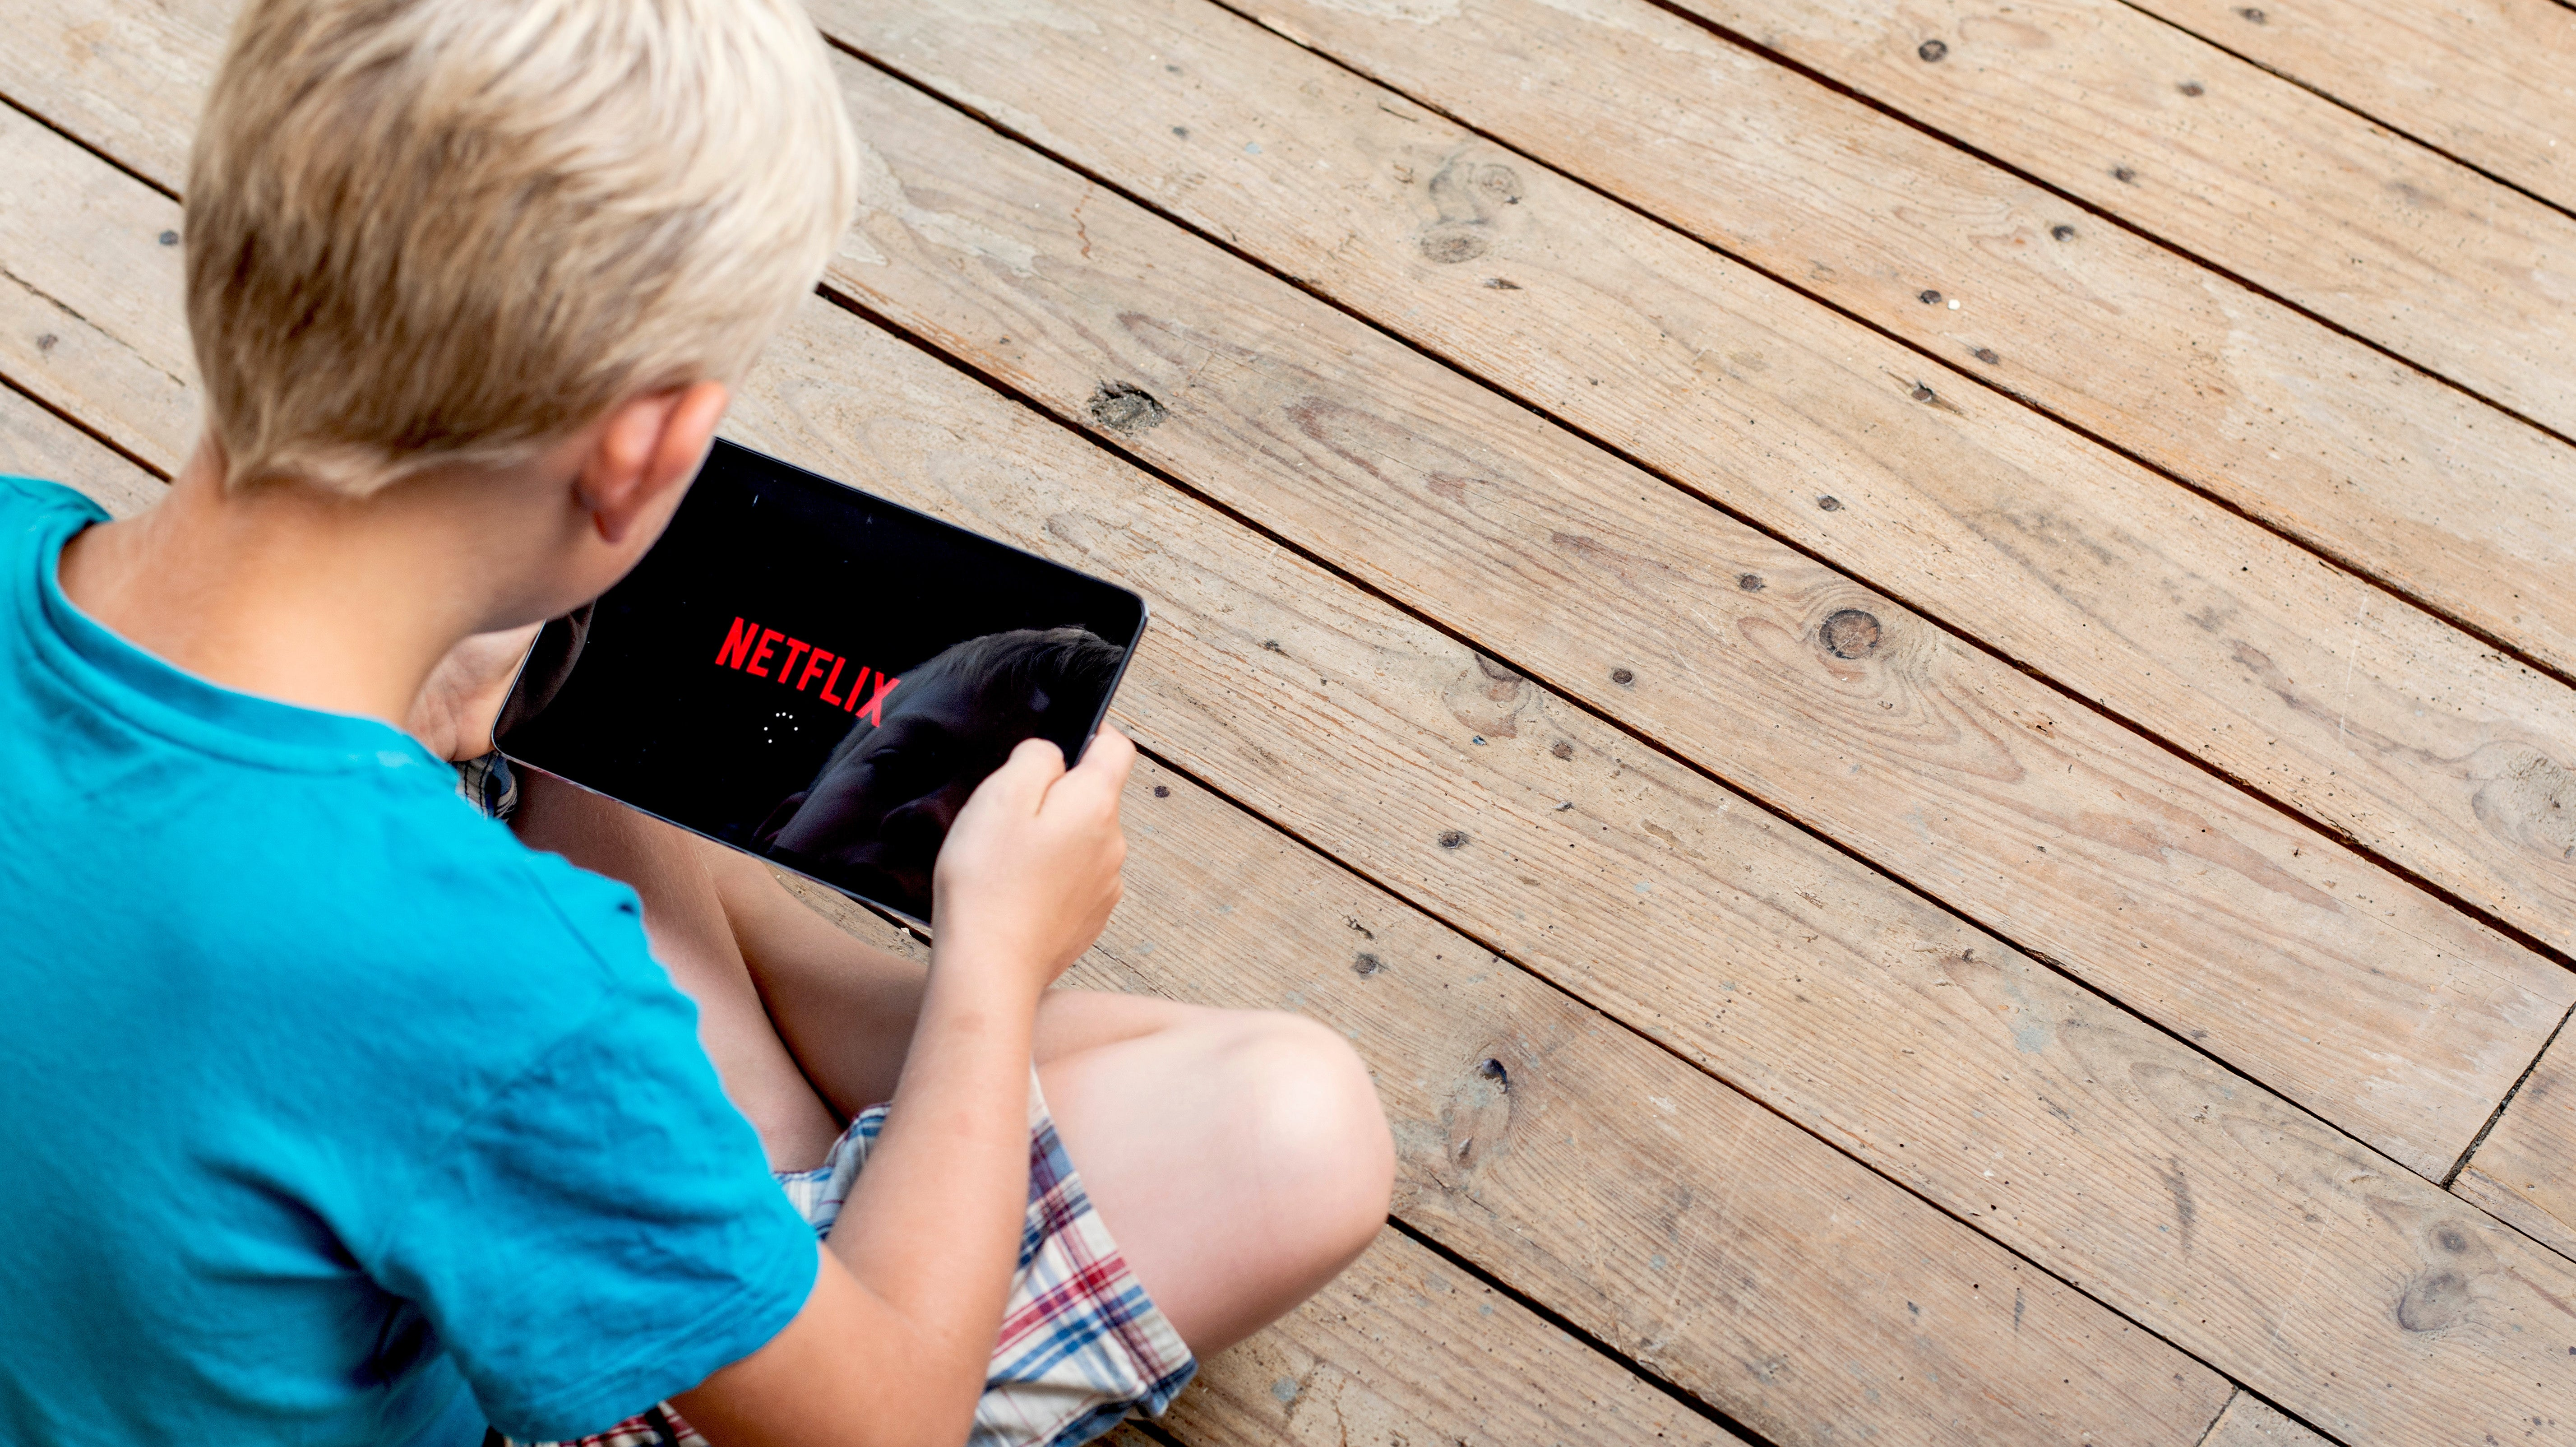 Netflix Just Released New Parental Controls